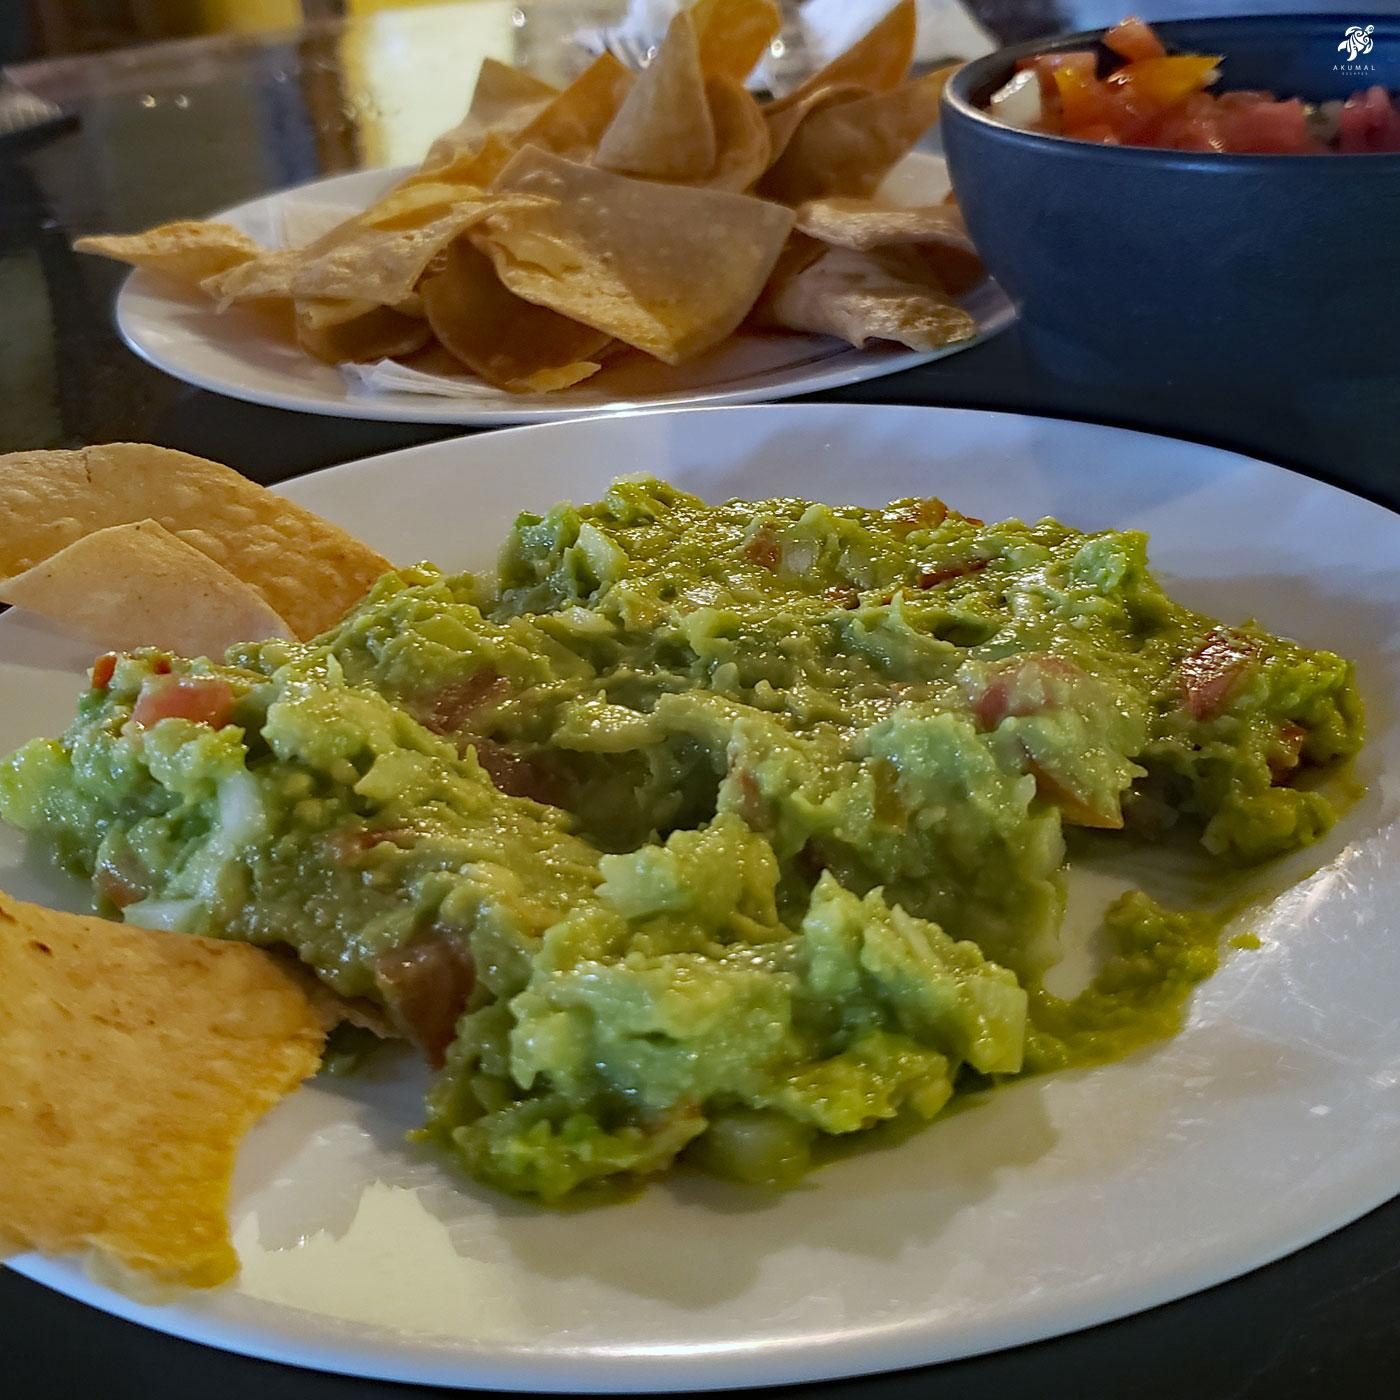 Fresh guacamole ready to eat with chips